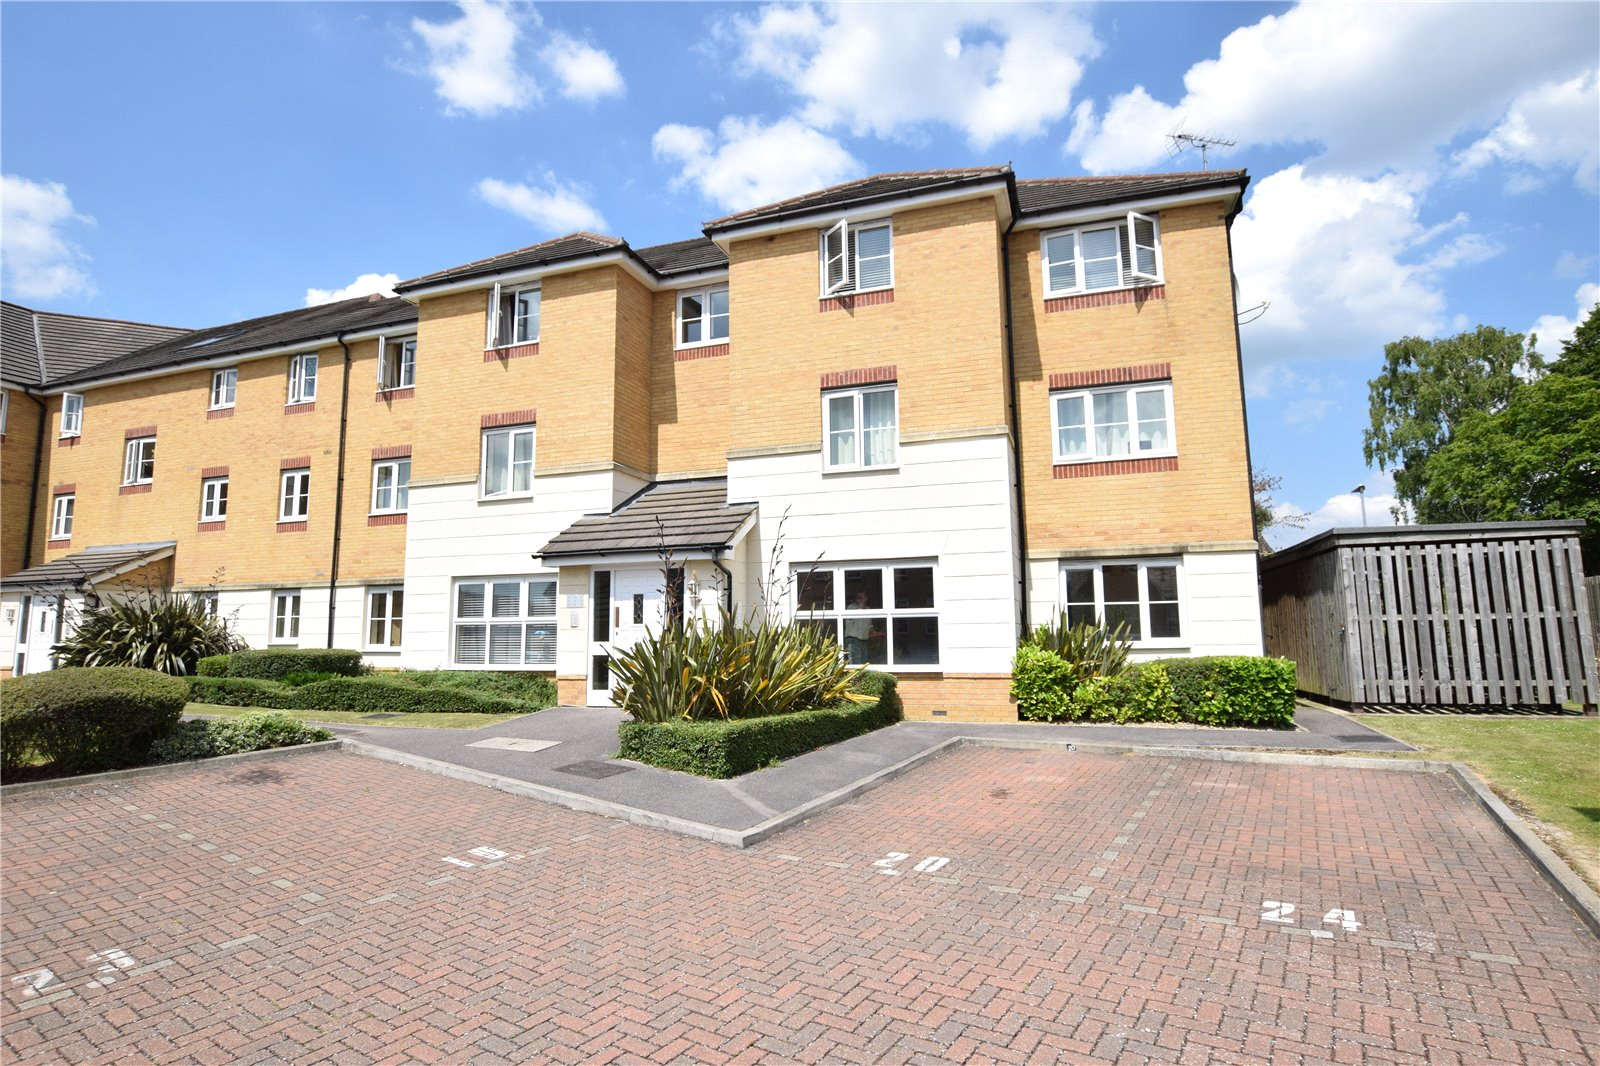 2 Bedrooms Apartment Flat for sale in Somerville Rise, Bracknell, Berkshire, RG12